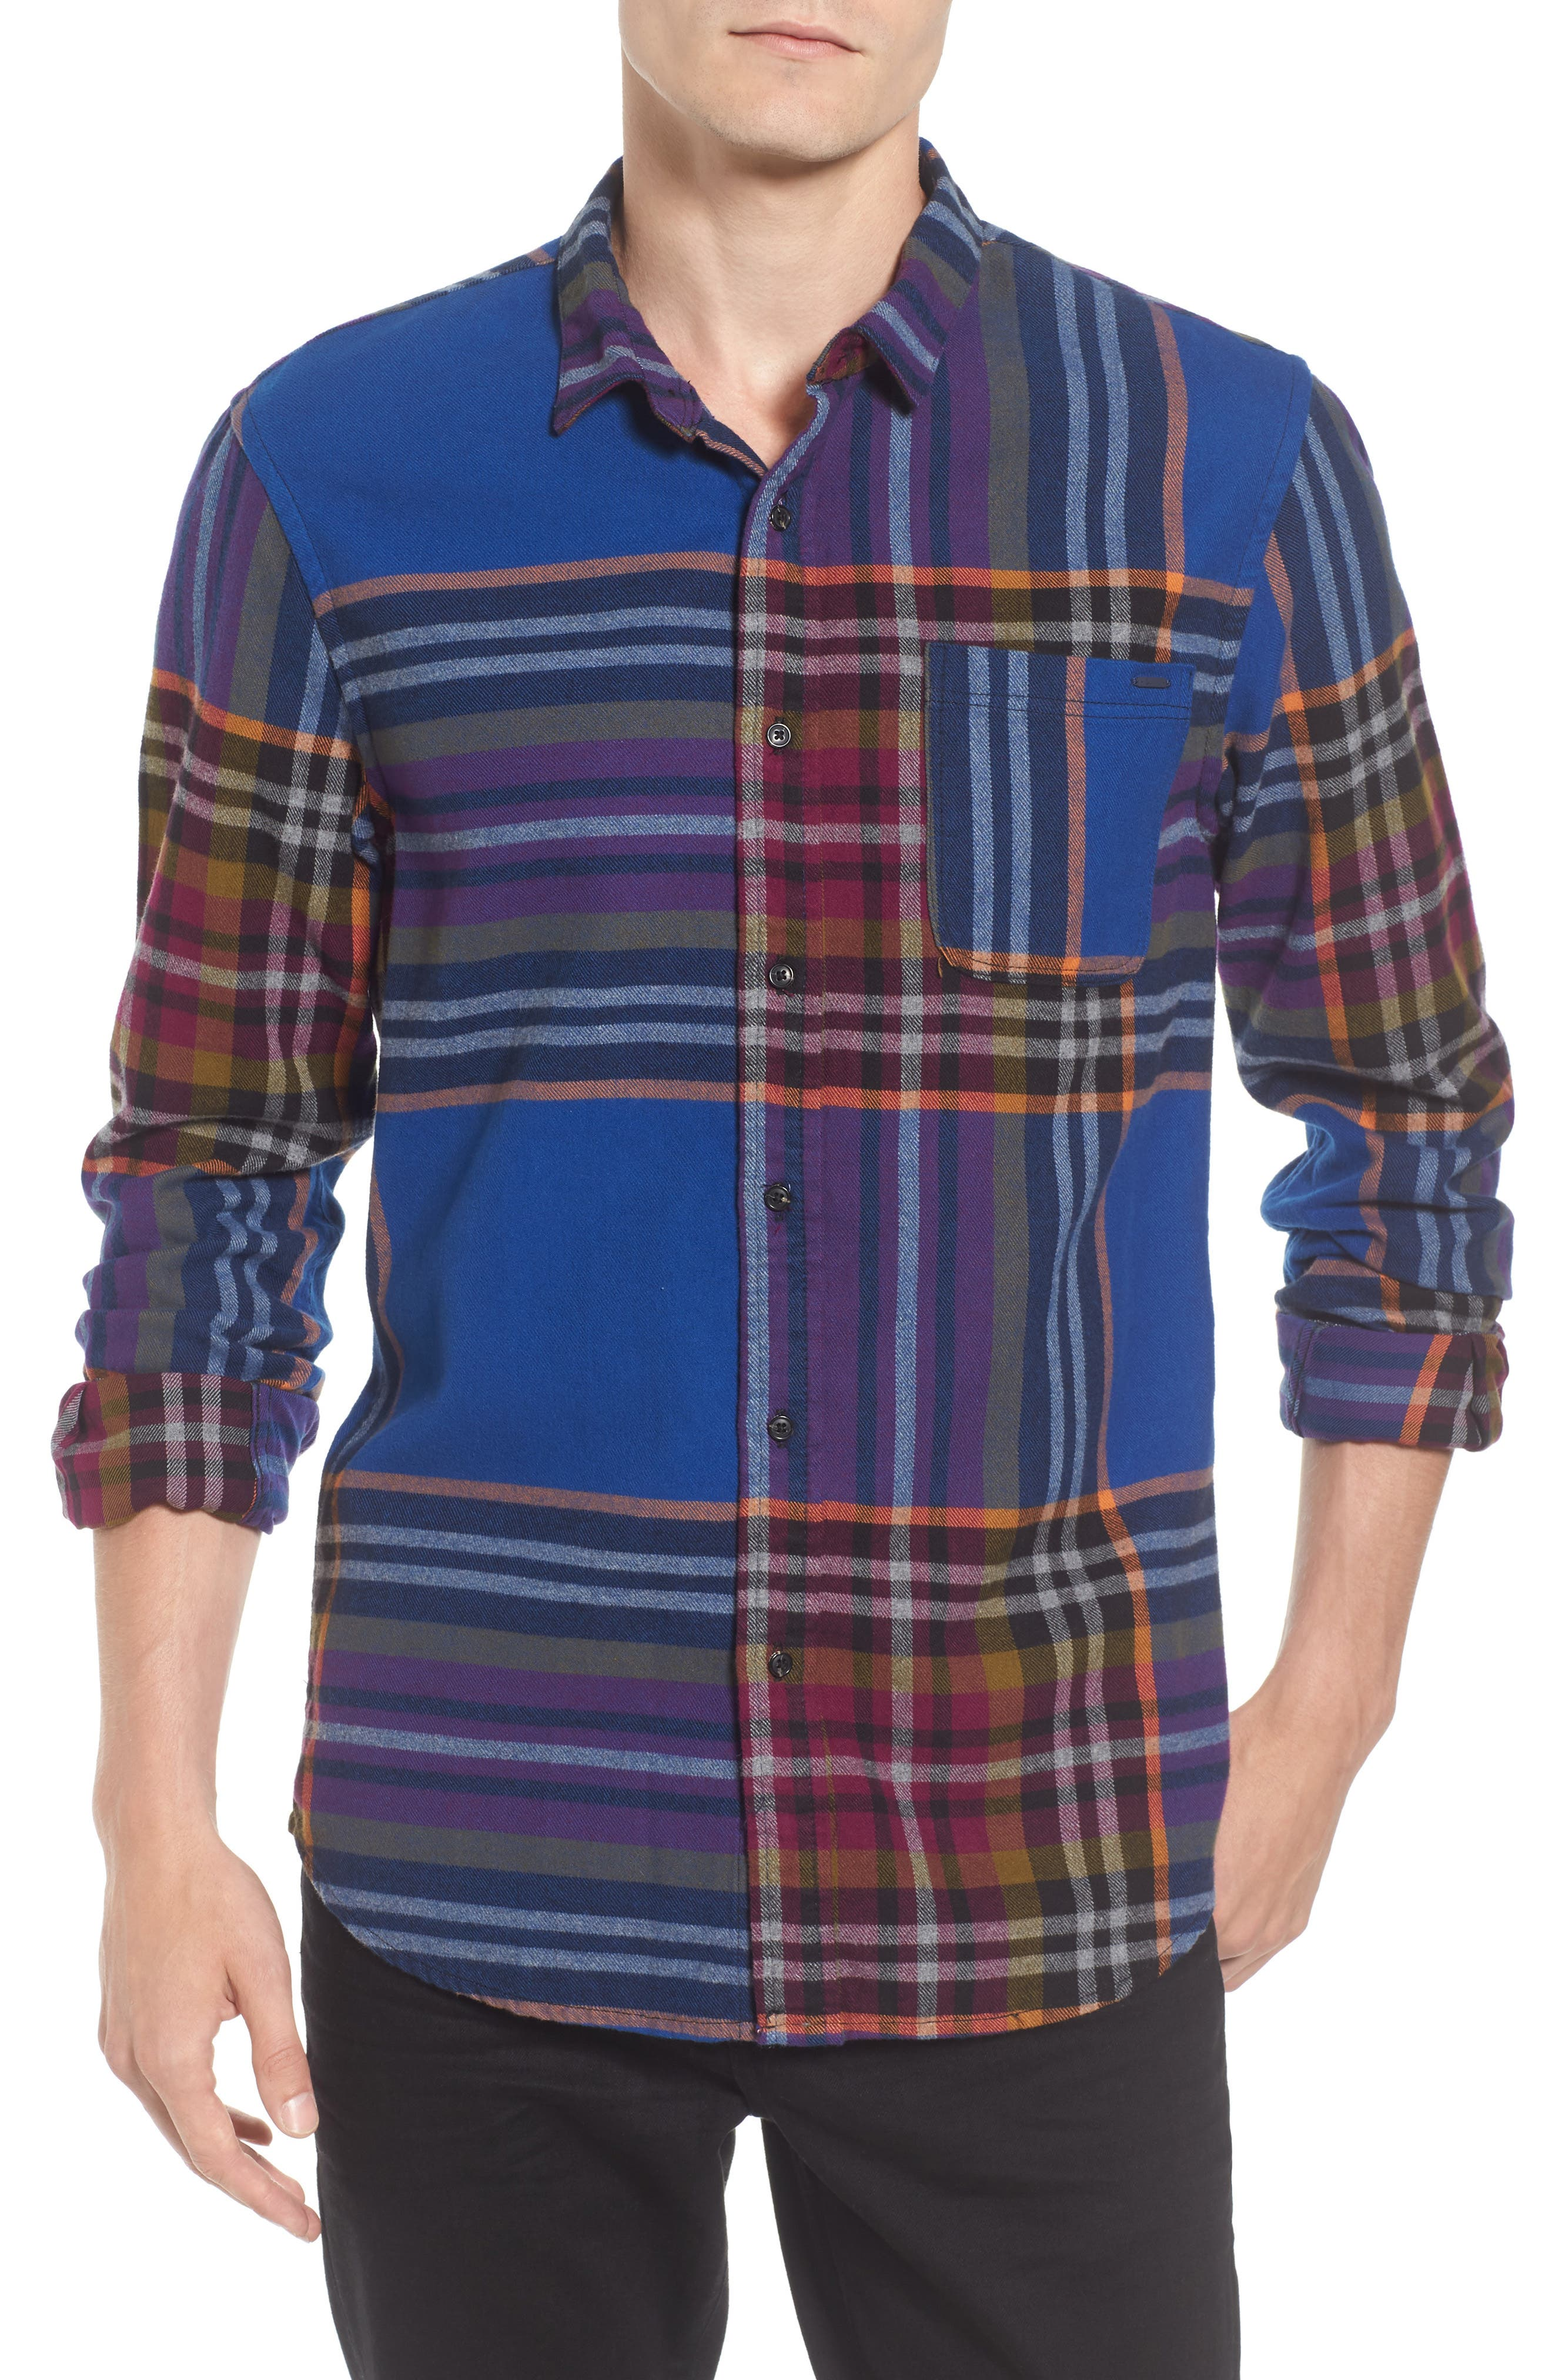 Alternate Image 1 Selected - Scotch & Soda Brushed Flannel Plaid Shirt